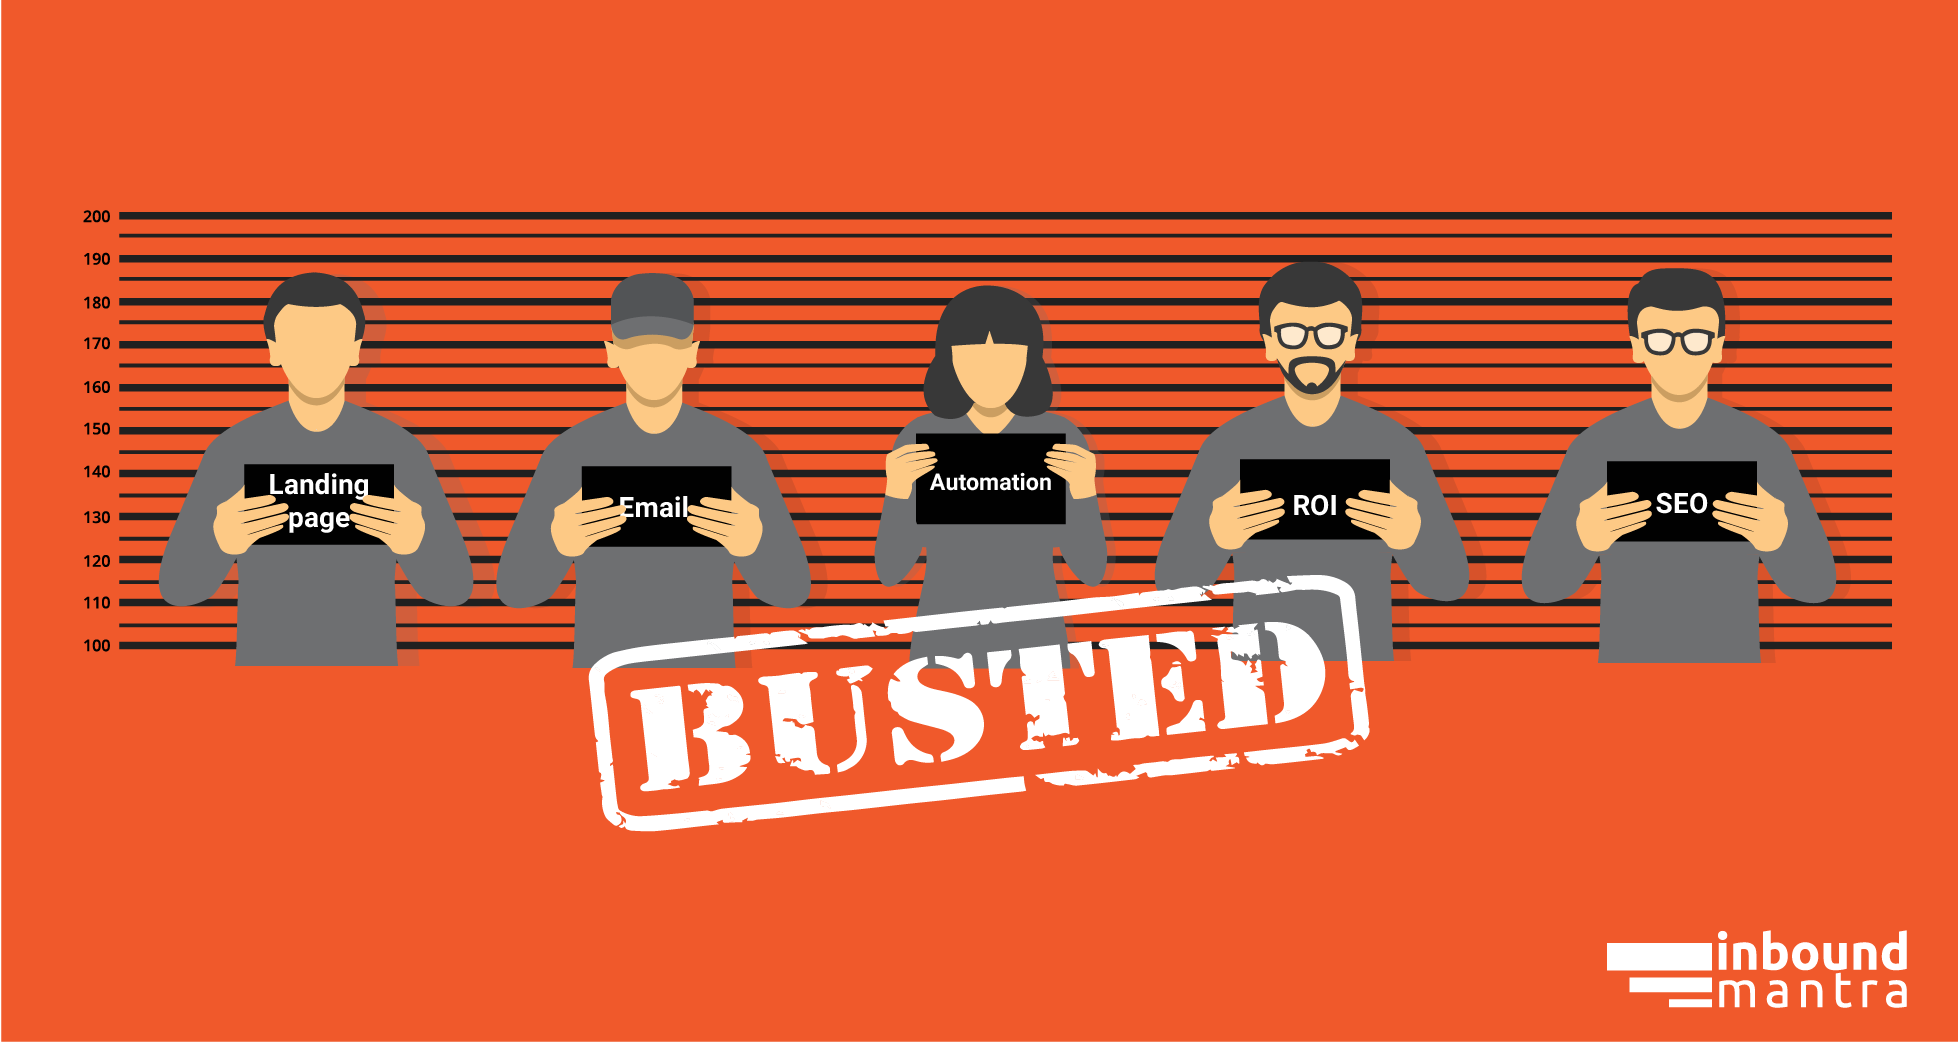 5 Myths of Inbound Marketing Busted!